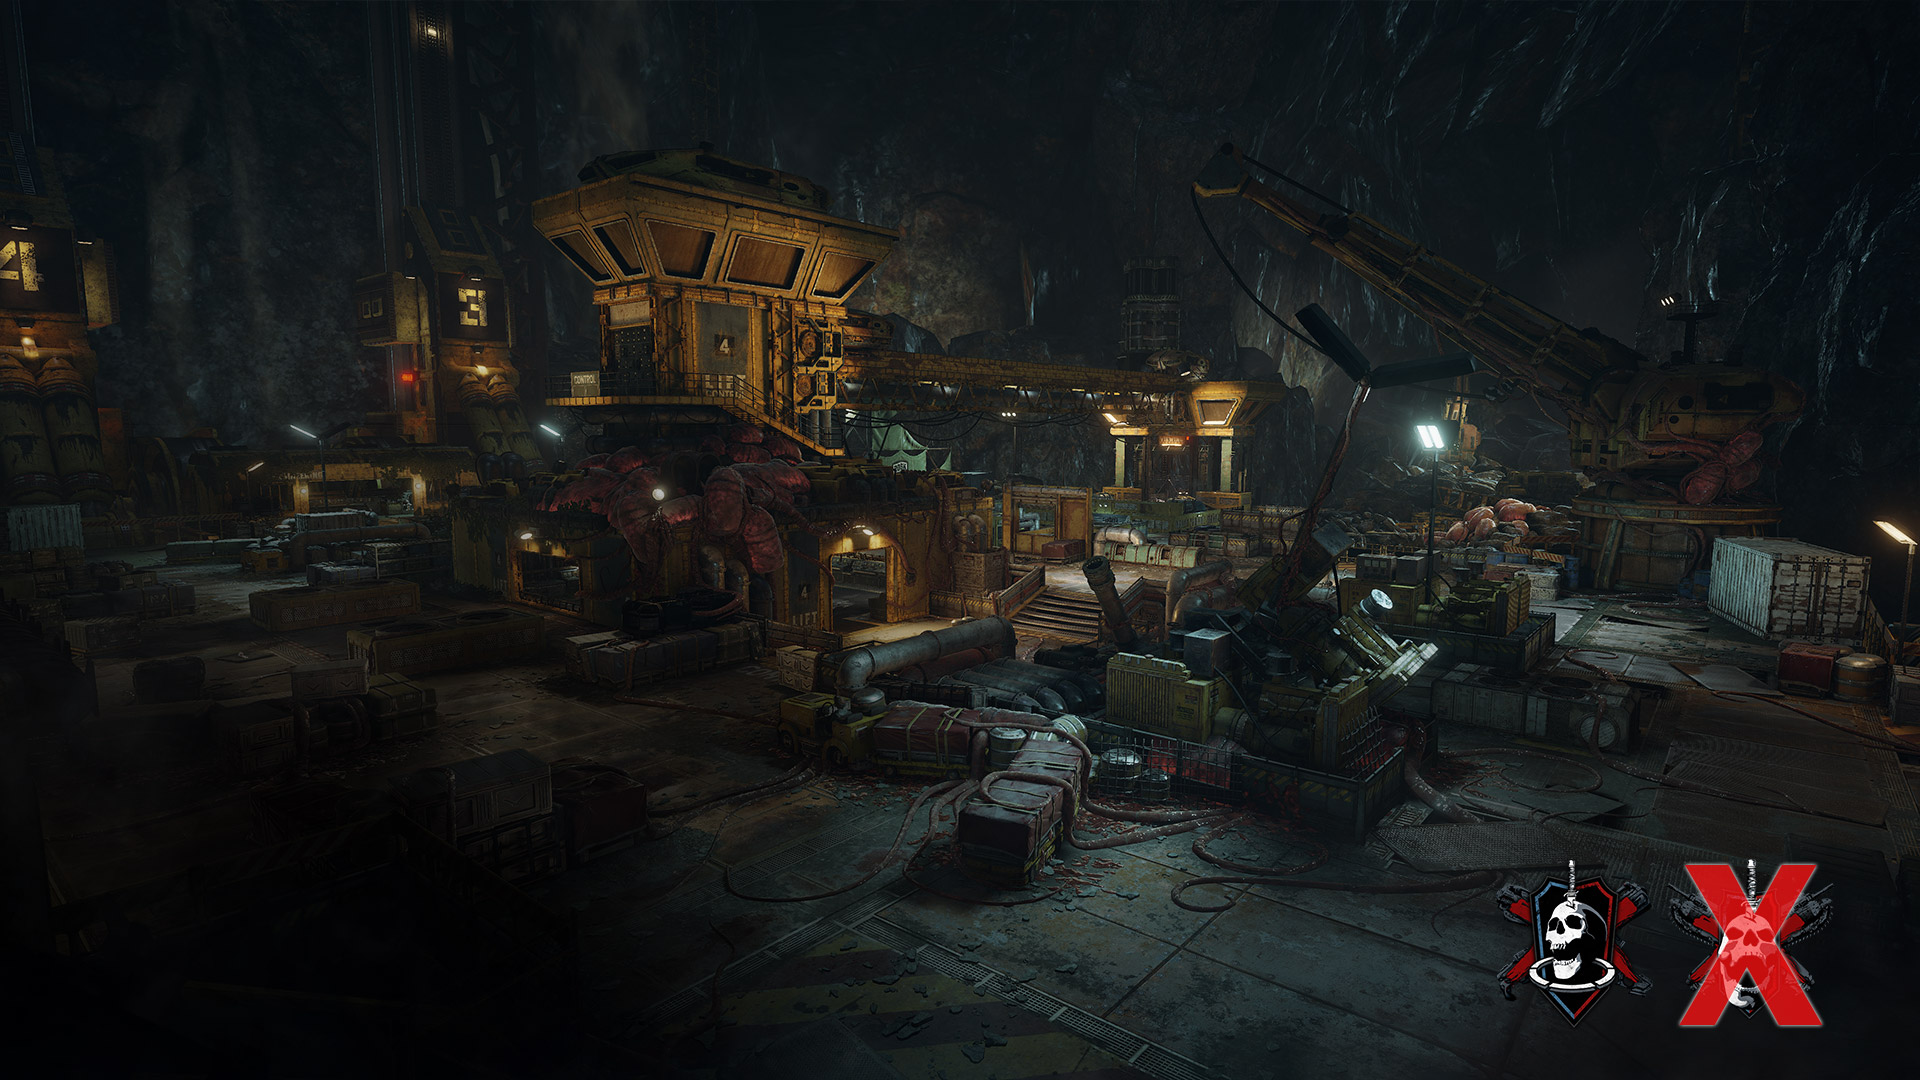 Gears of War 4 - Active Maps | Gears of War - Official Site